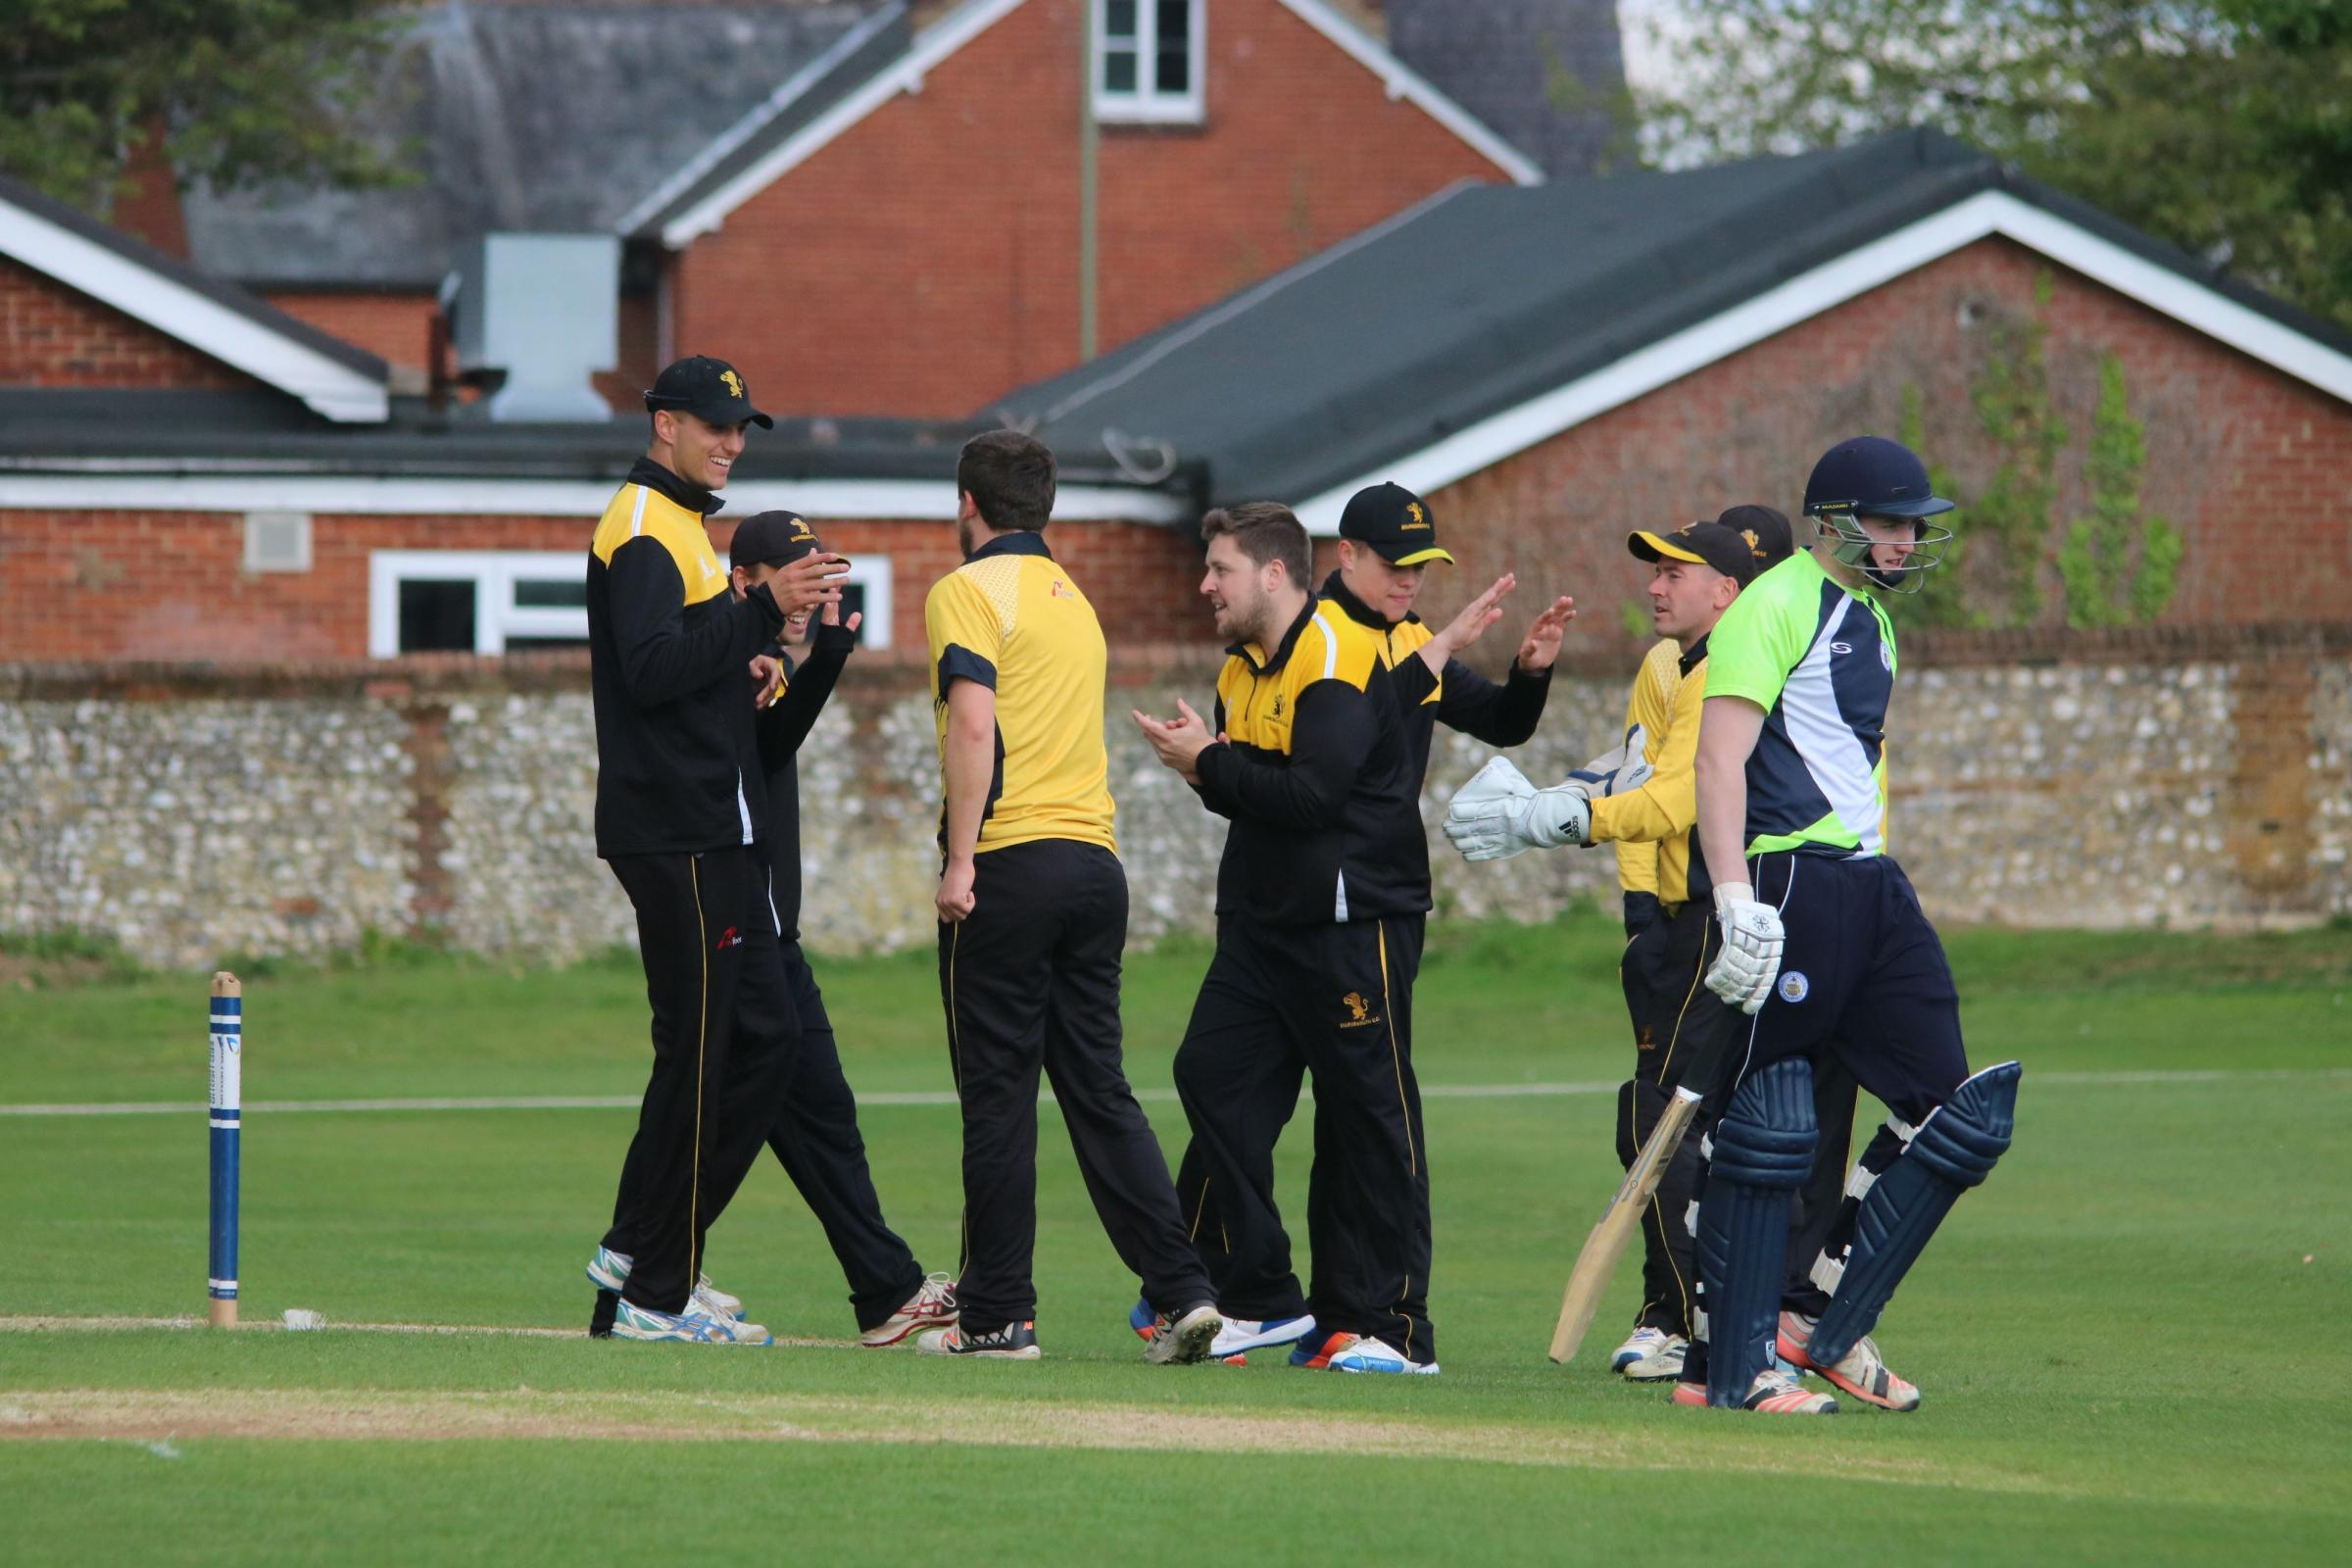 STRONG START: bournemiouth celebrate after claiming a wicket at Basingstoke on Saturday (Picture: James Robinson)